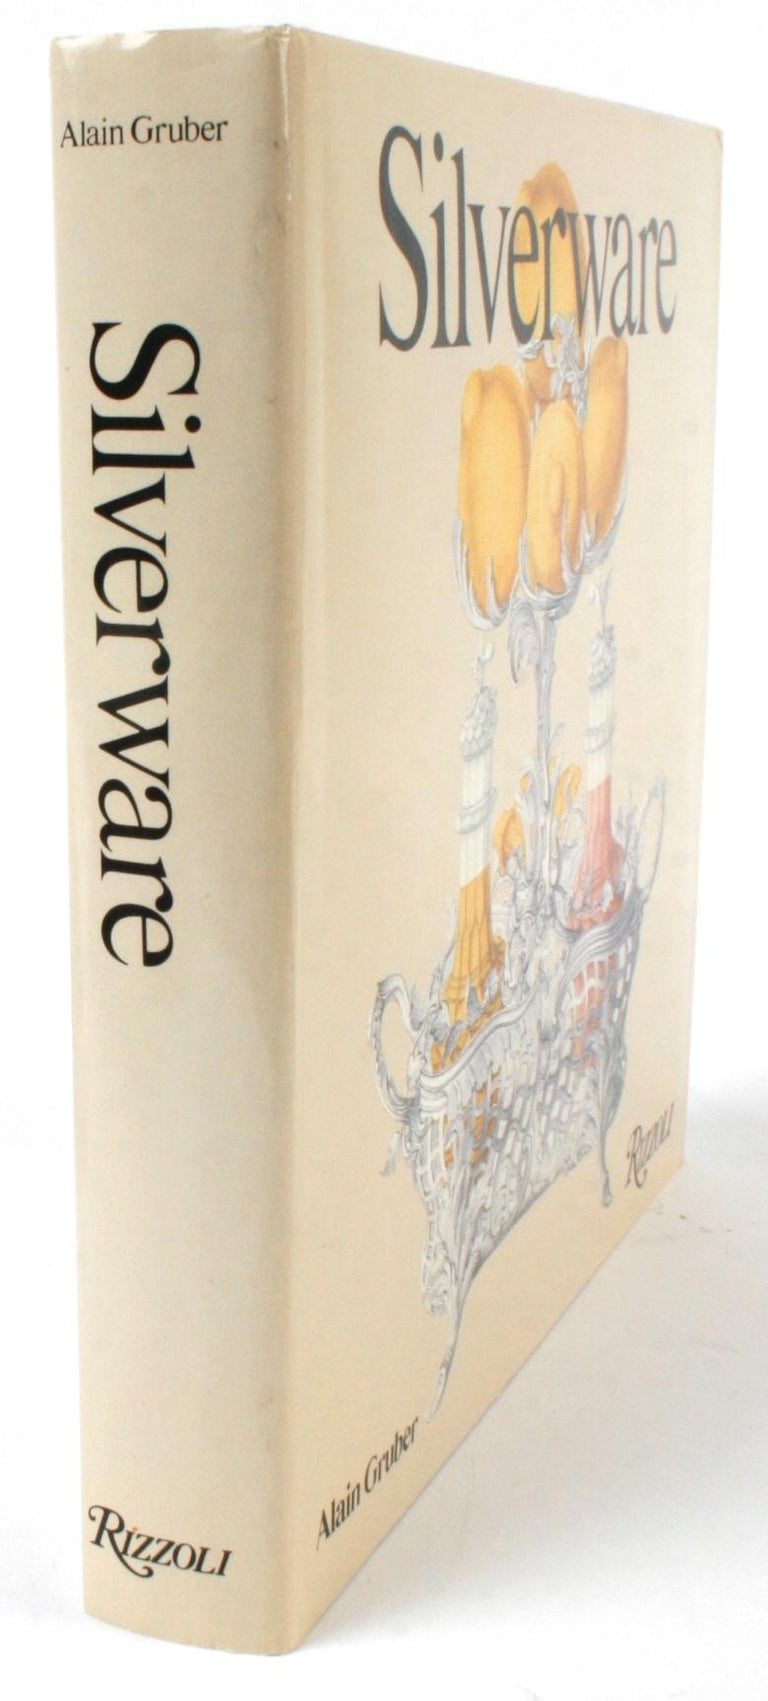 Silverware by Alain Gruber, First Edition Book For Sale 13